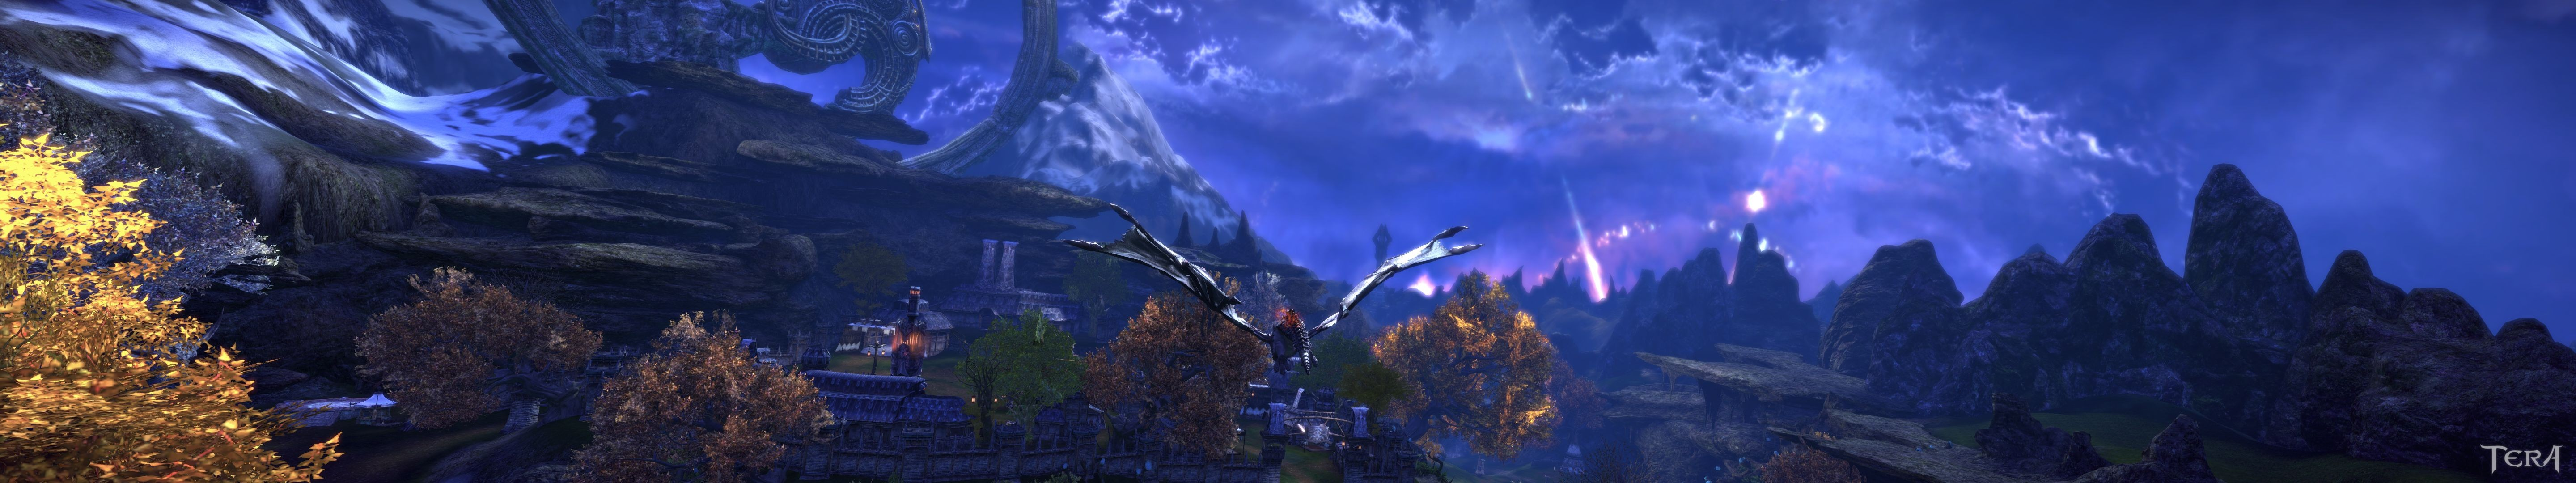 TERA - Flying into some new scenery. 3 monitors required to view at full resolution.